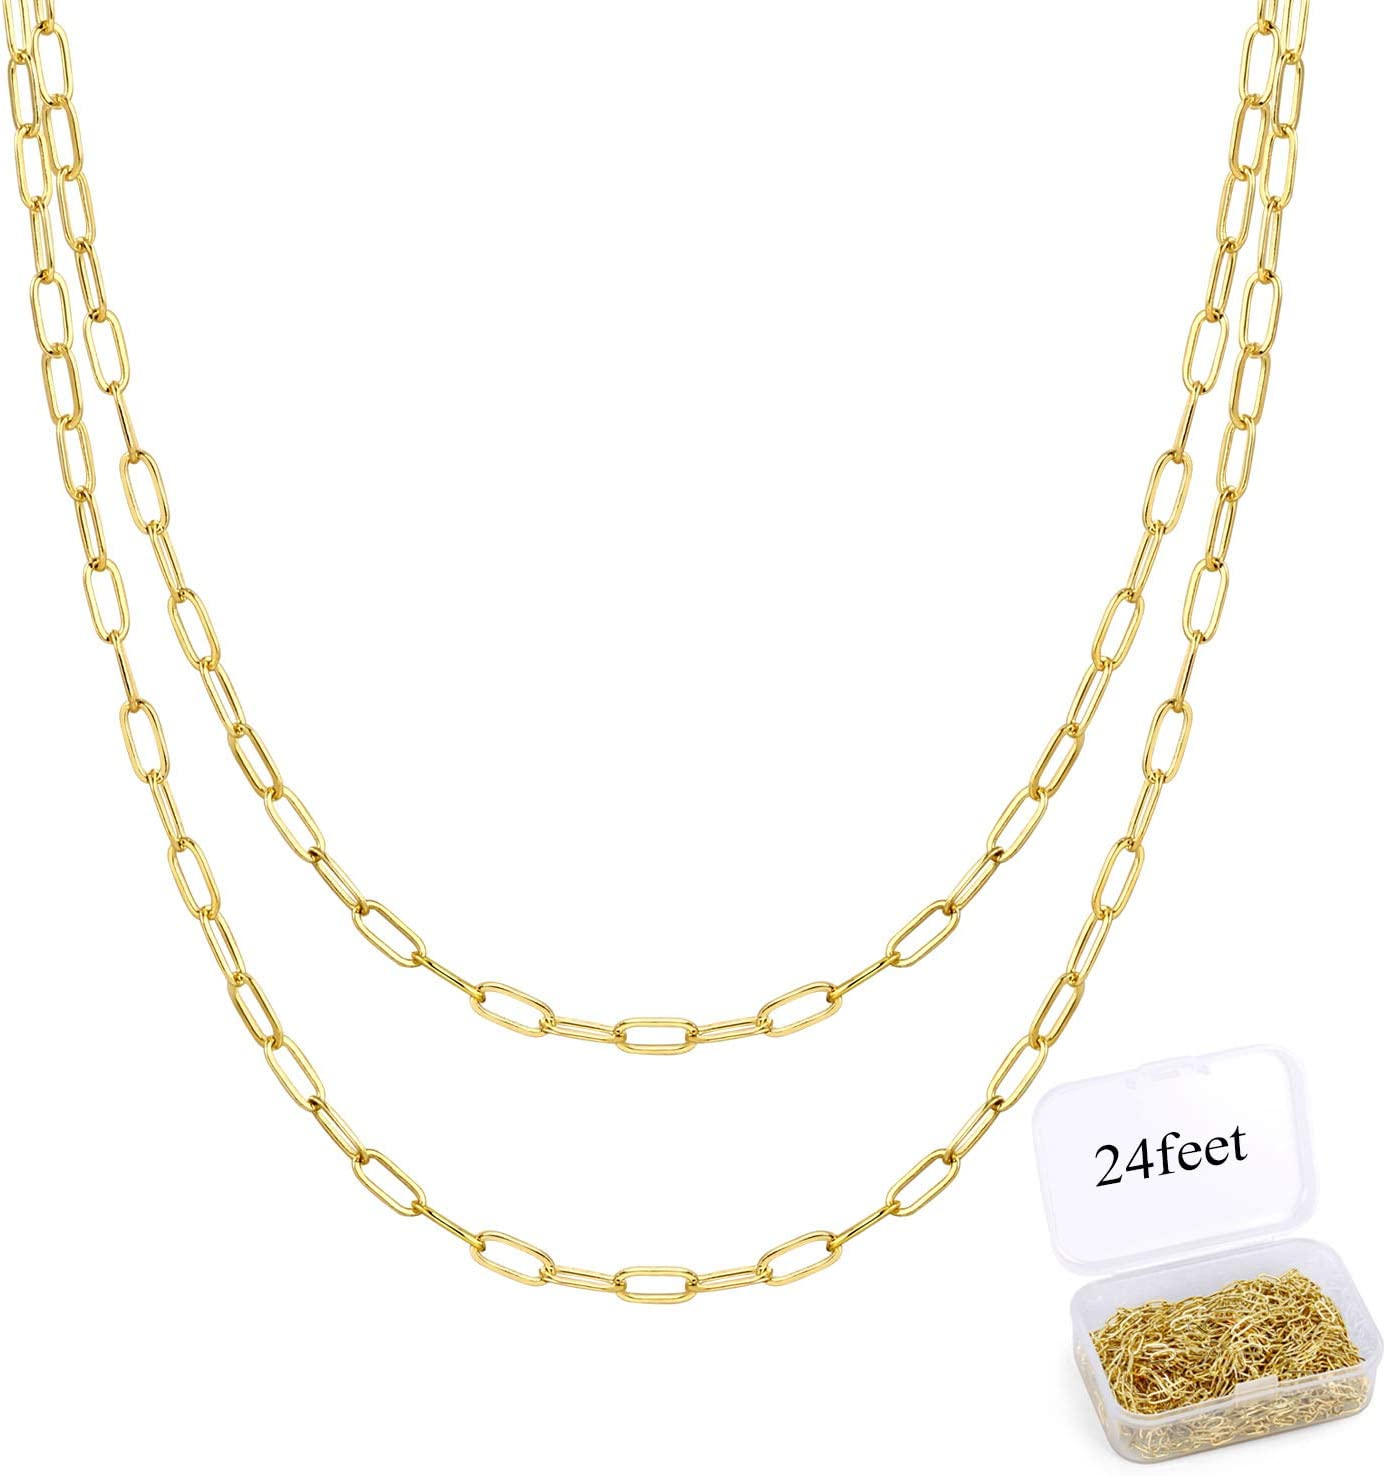 24 Feet Chains for Jewelry Making Stainless Steel Paperclip Chain Oval Link Chain Bulk for DIY Jewelry Necklace/…